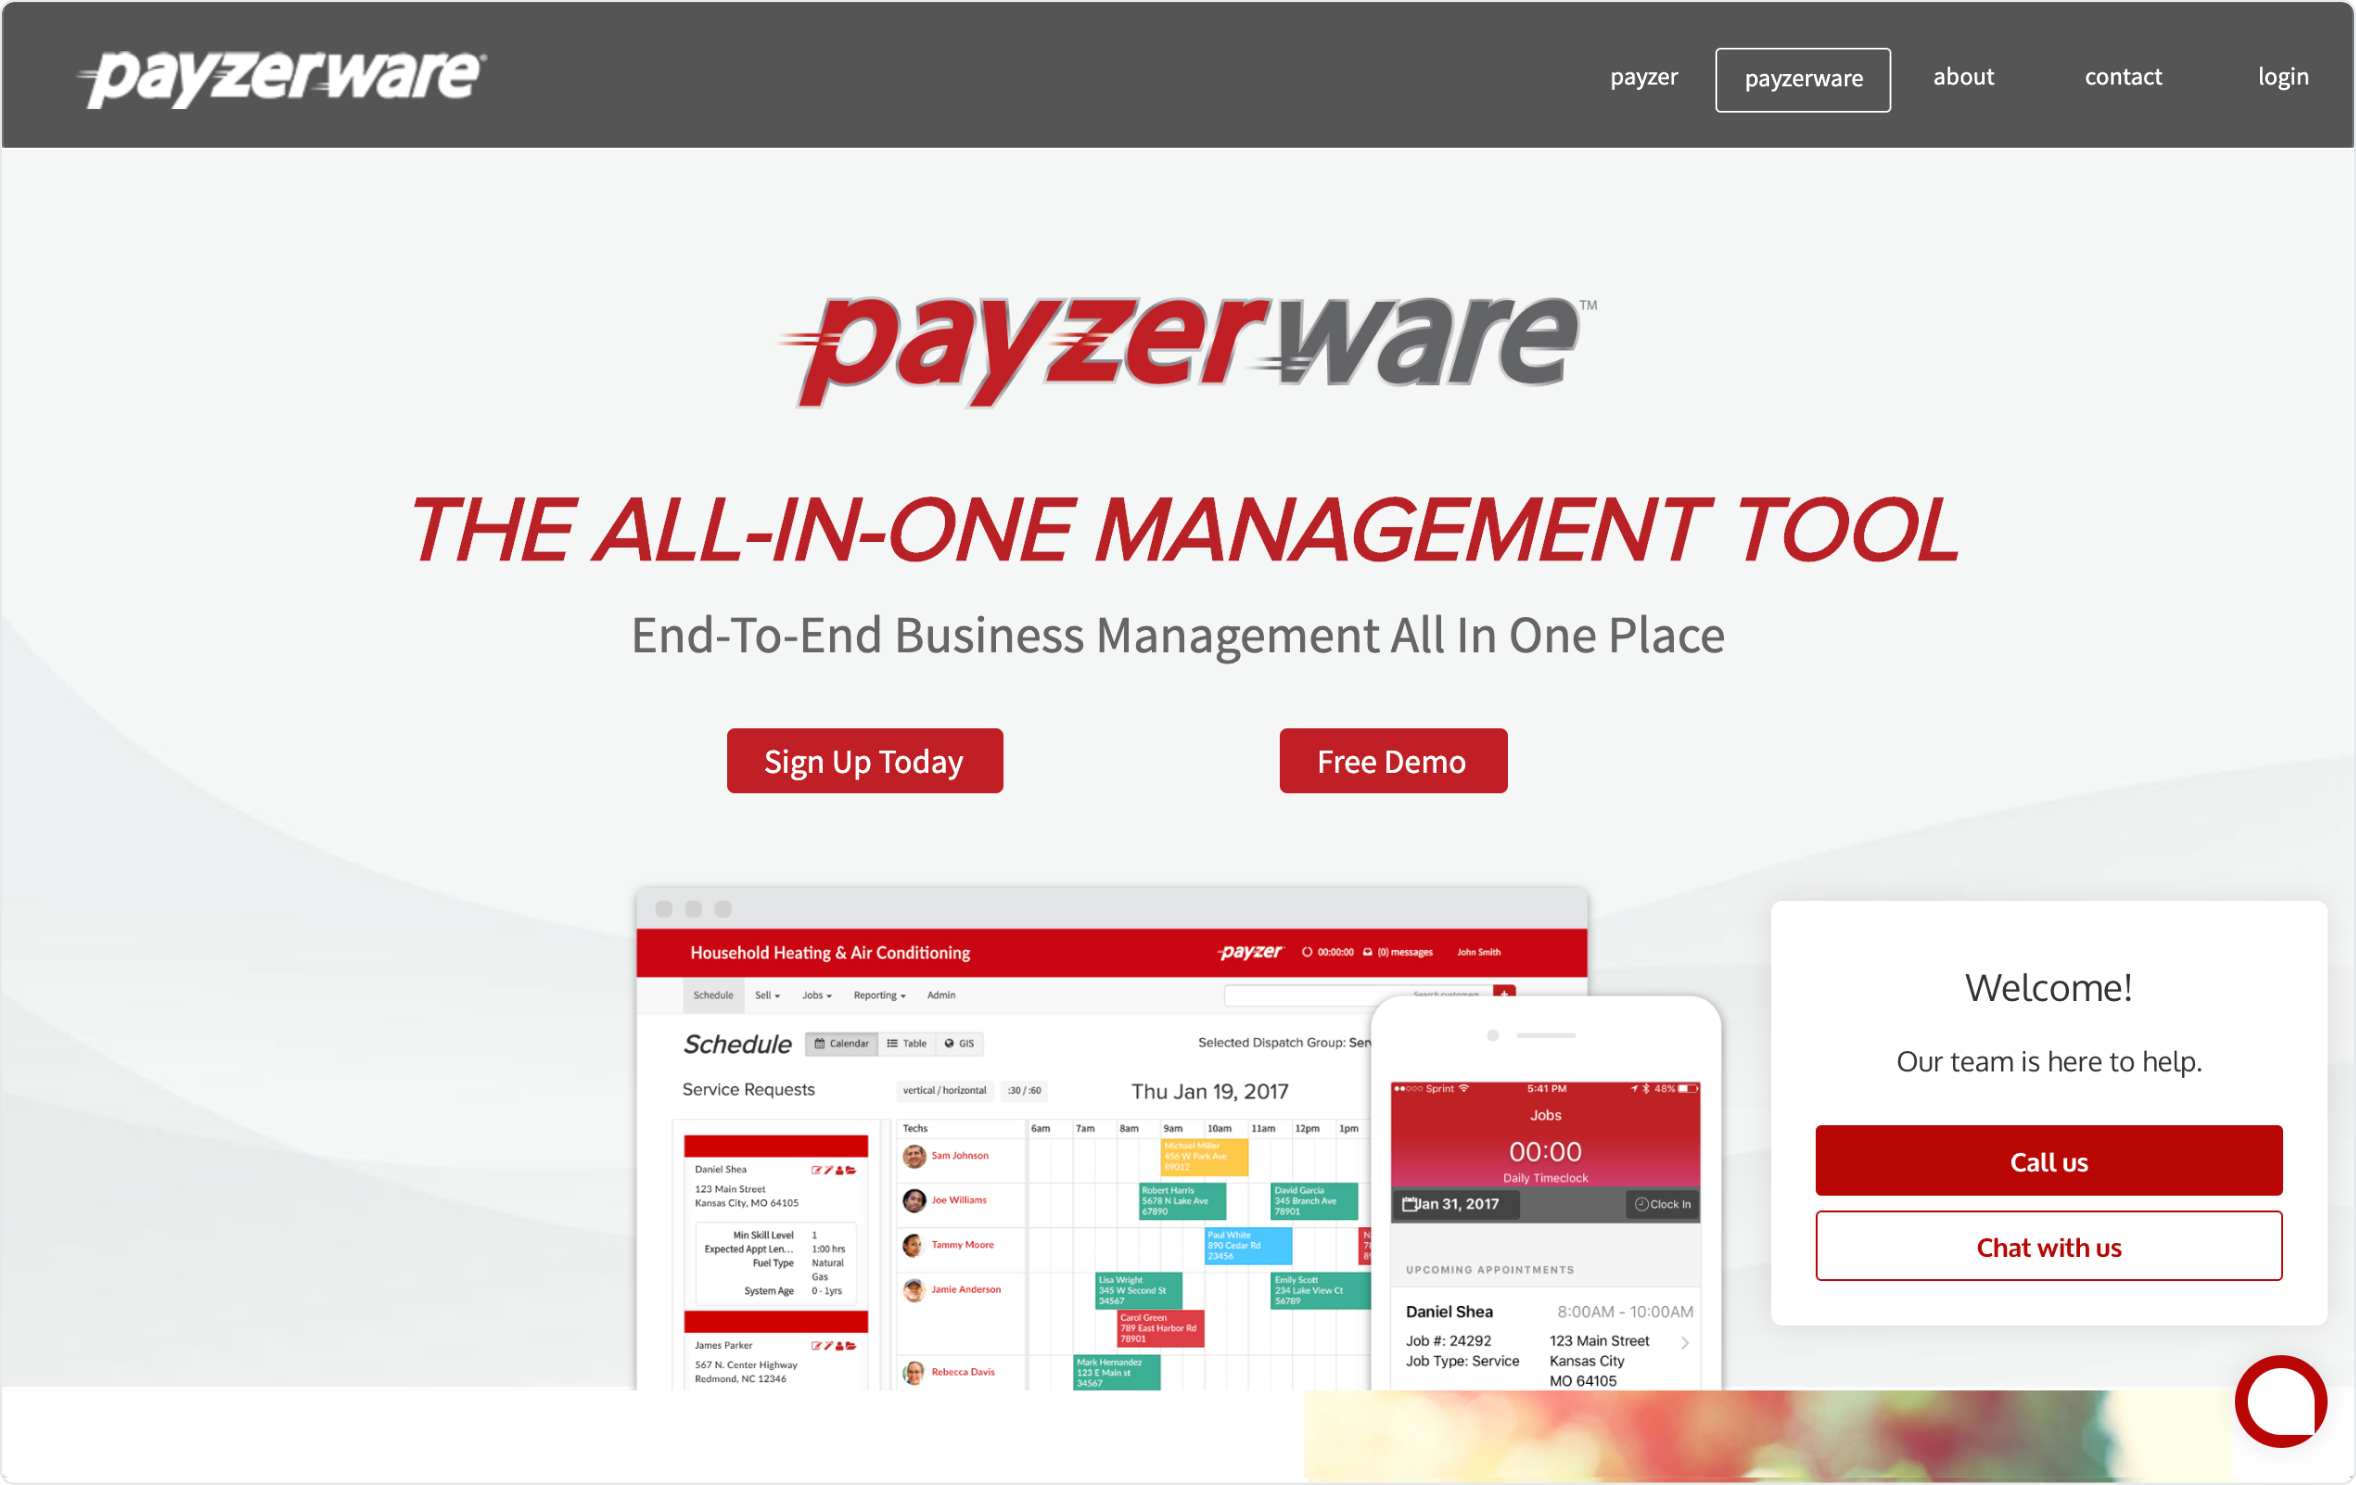 Payzer uses Qualified's Conversational Marketing Application to connect with sales-ready visitors